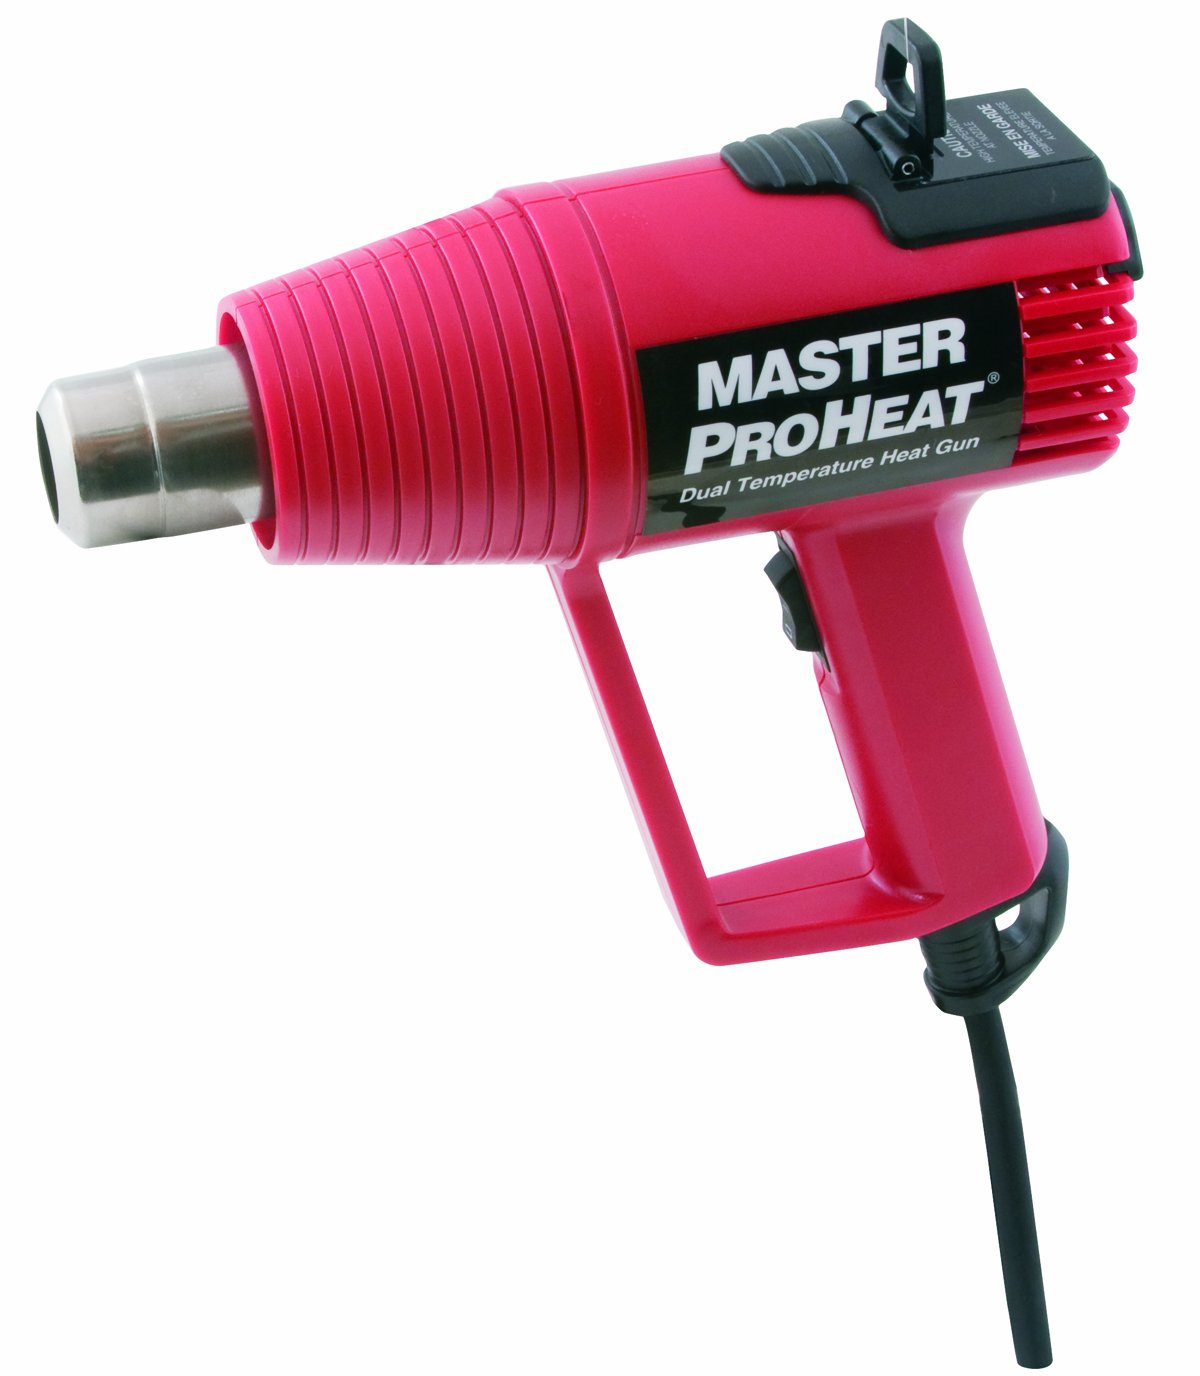 Master Appliance Proheat PH-1100 Dual Temp Professional Heat Gun, 500 and 1000-Degree Fahrenheit 120V 1300 Watts